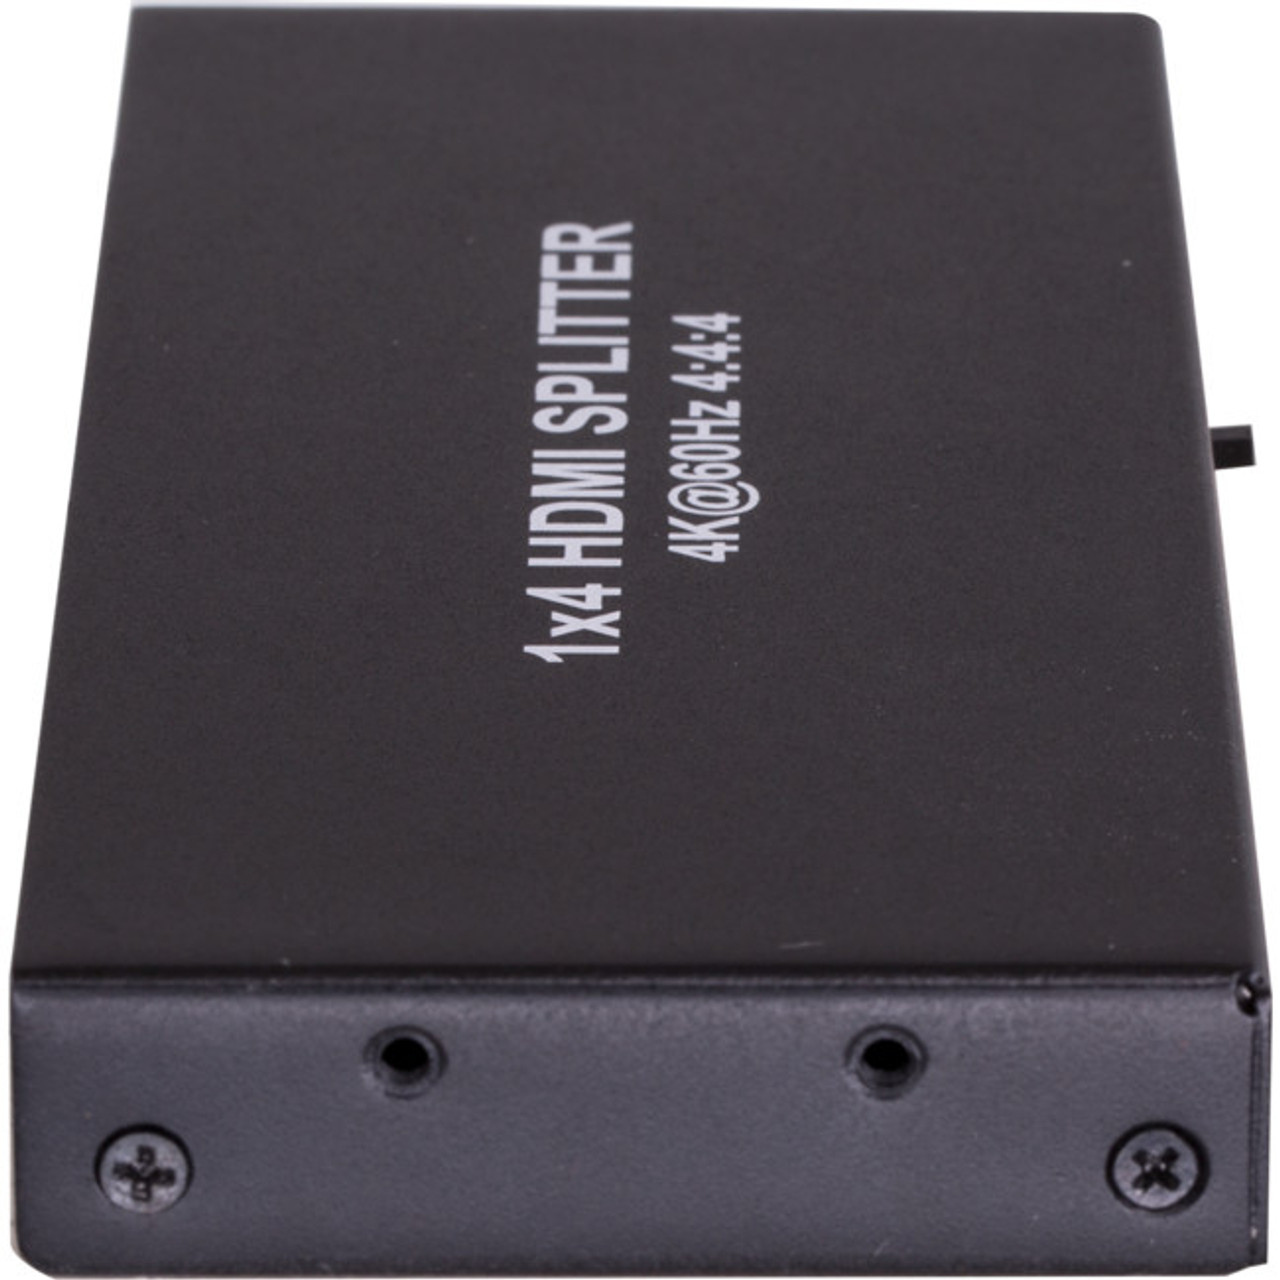 PRO2 HDMI 4SPV 1 in 4 Out Slim 18GBPS 2.0 HDMI Splitter